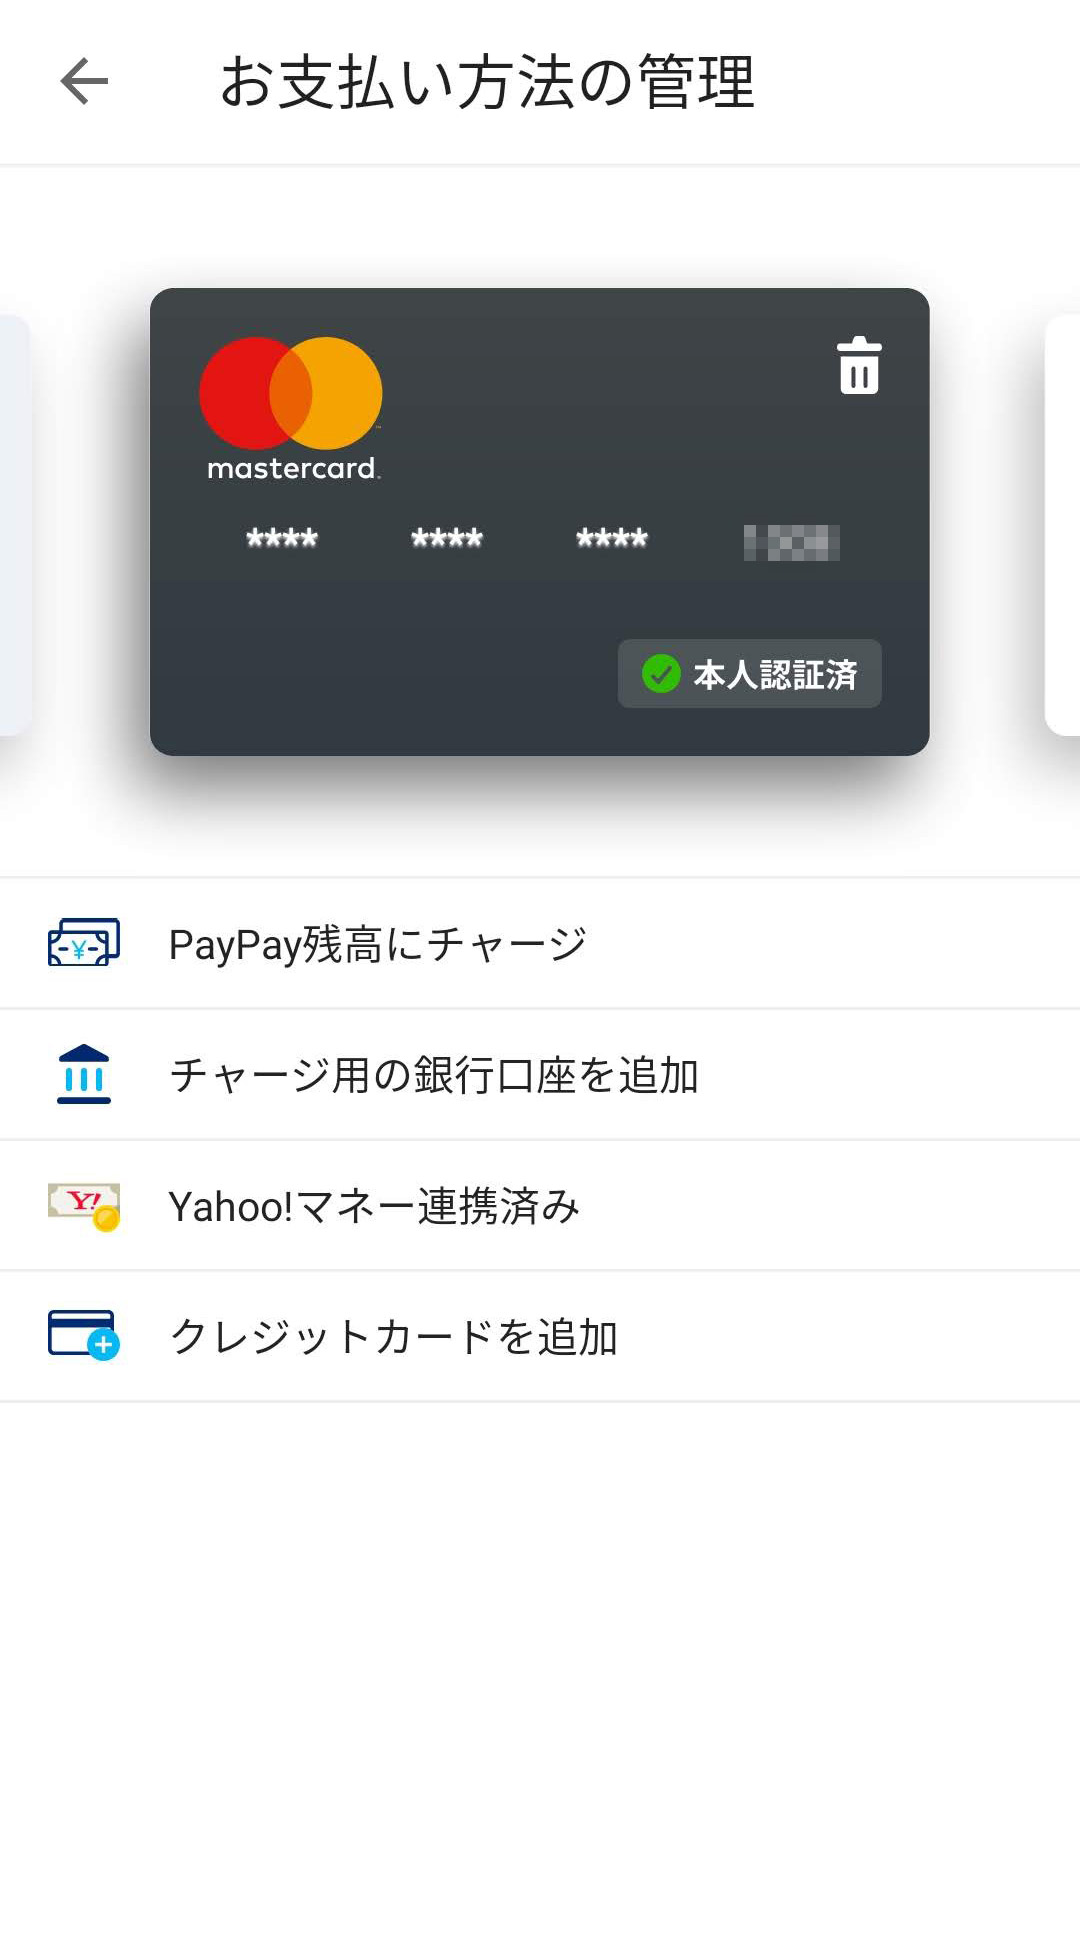 PayPayにクレカを登録